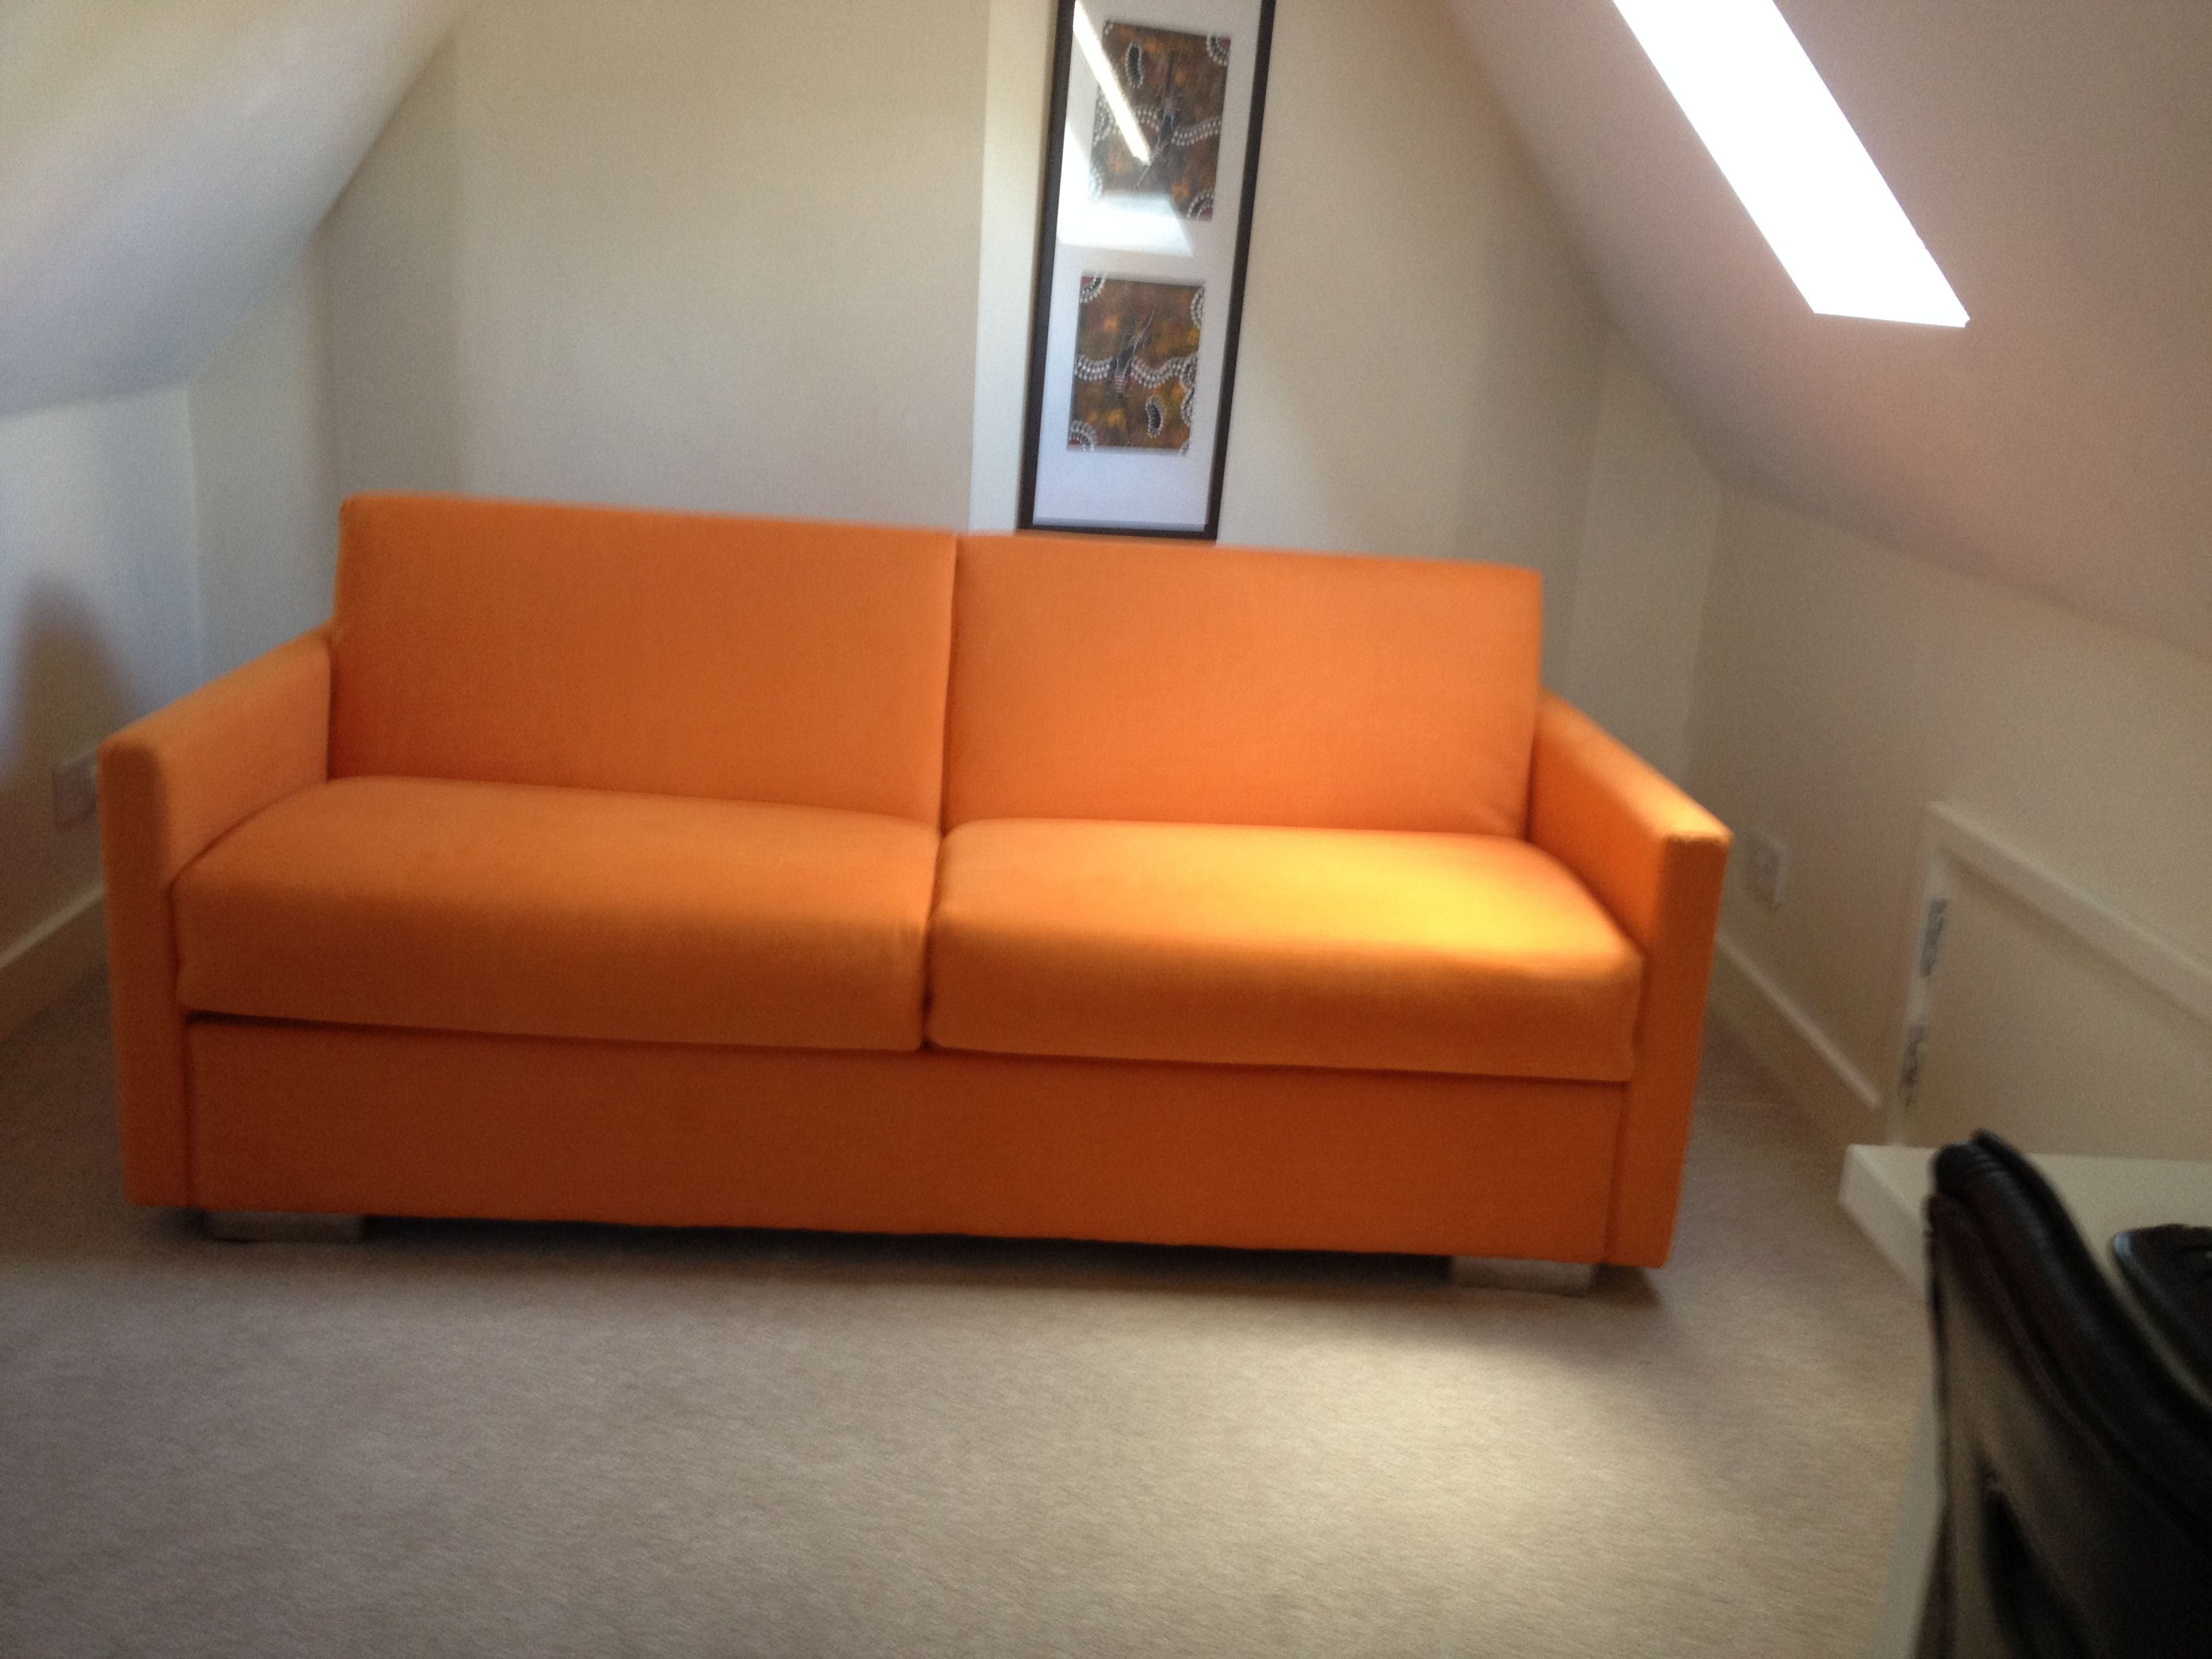 2.5 sofa bed with 8 cm slim arms (180 cm in total width